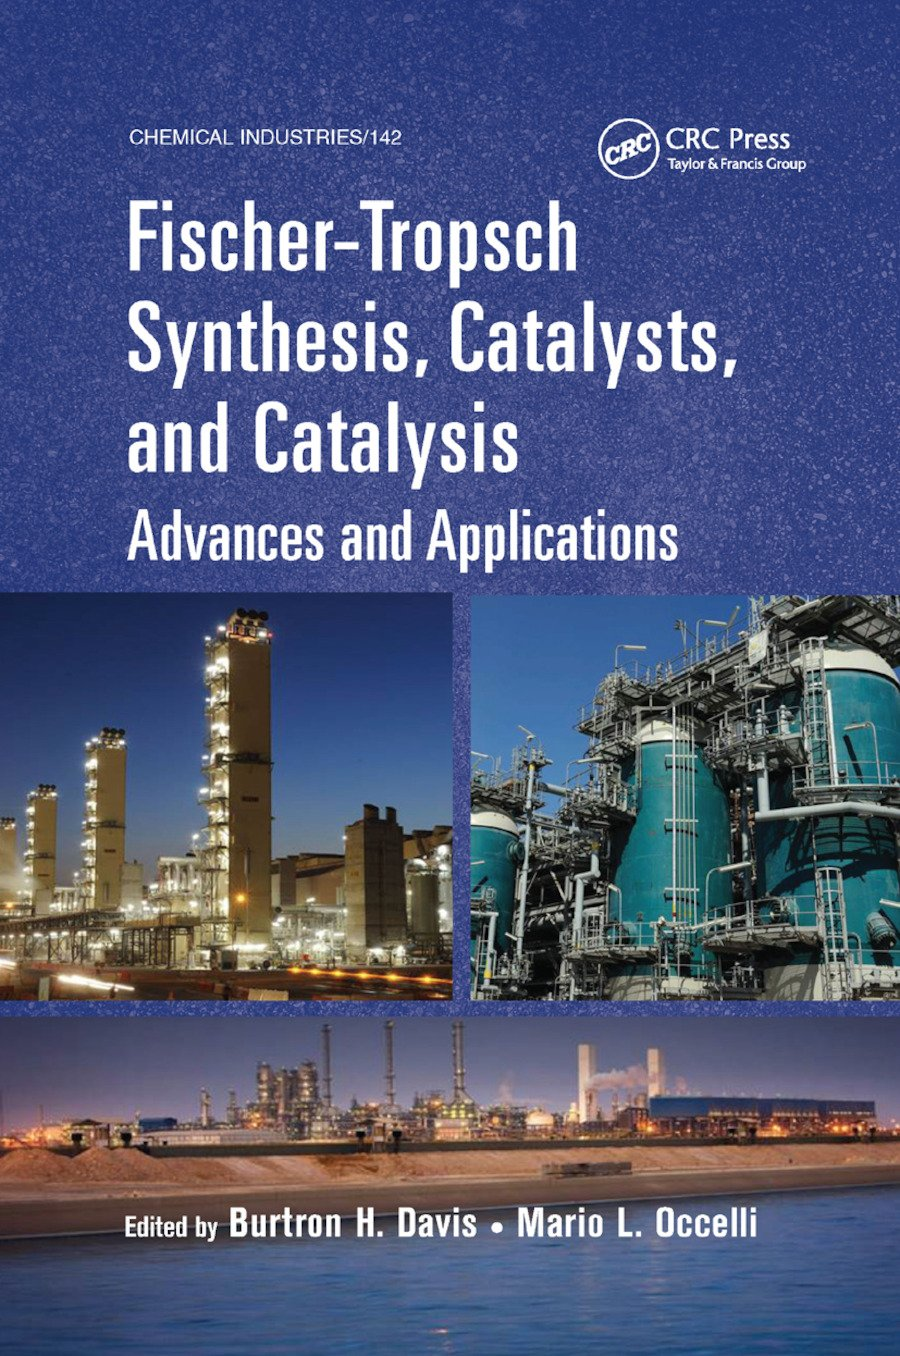 Fischer-Tropsch Synthesis, Catalysts, and Catalysis